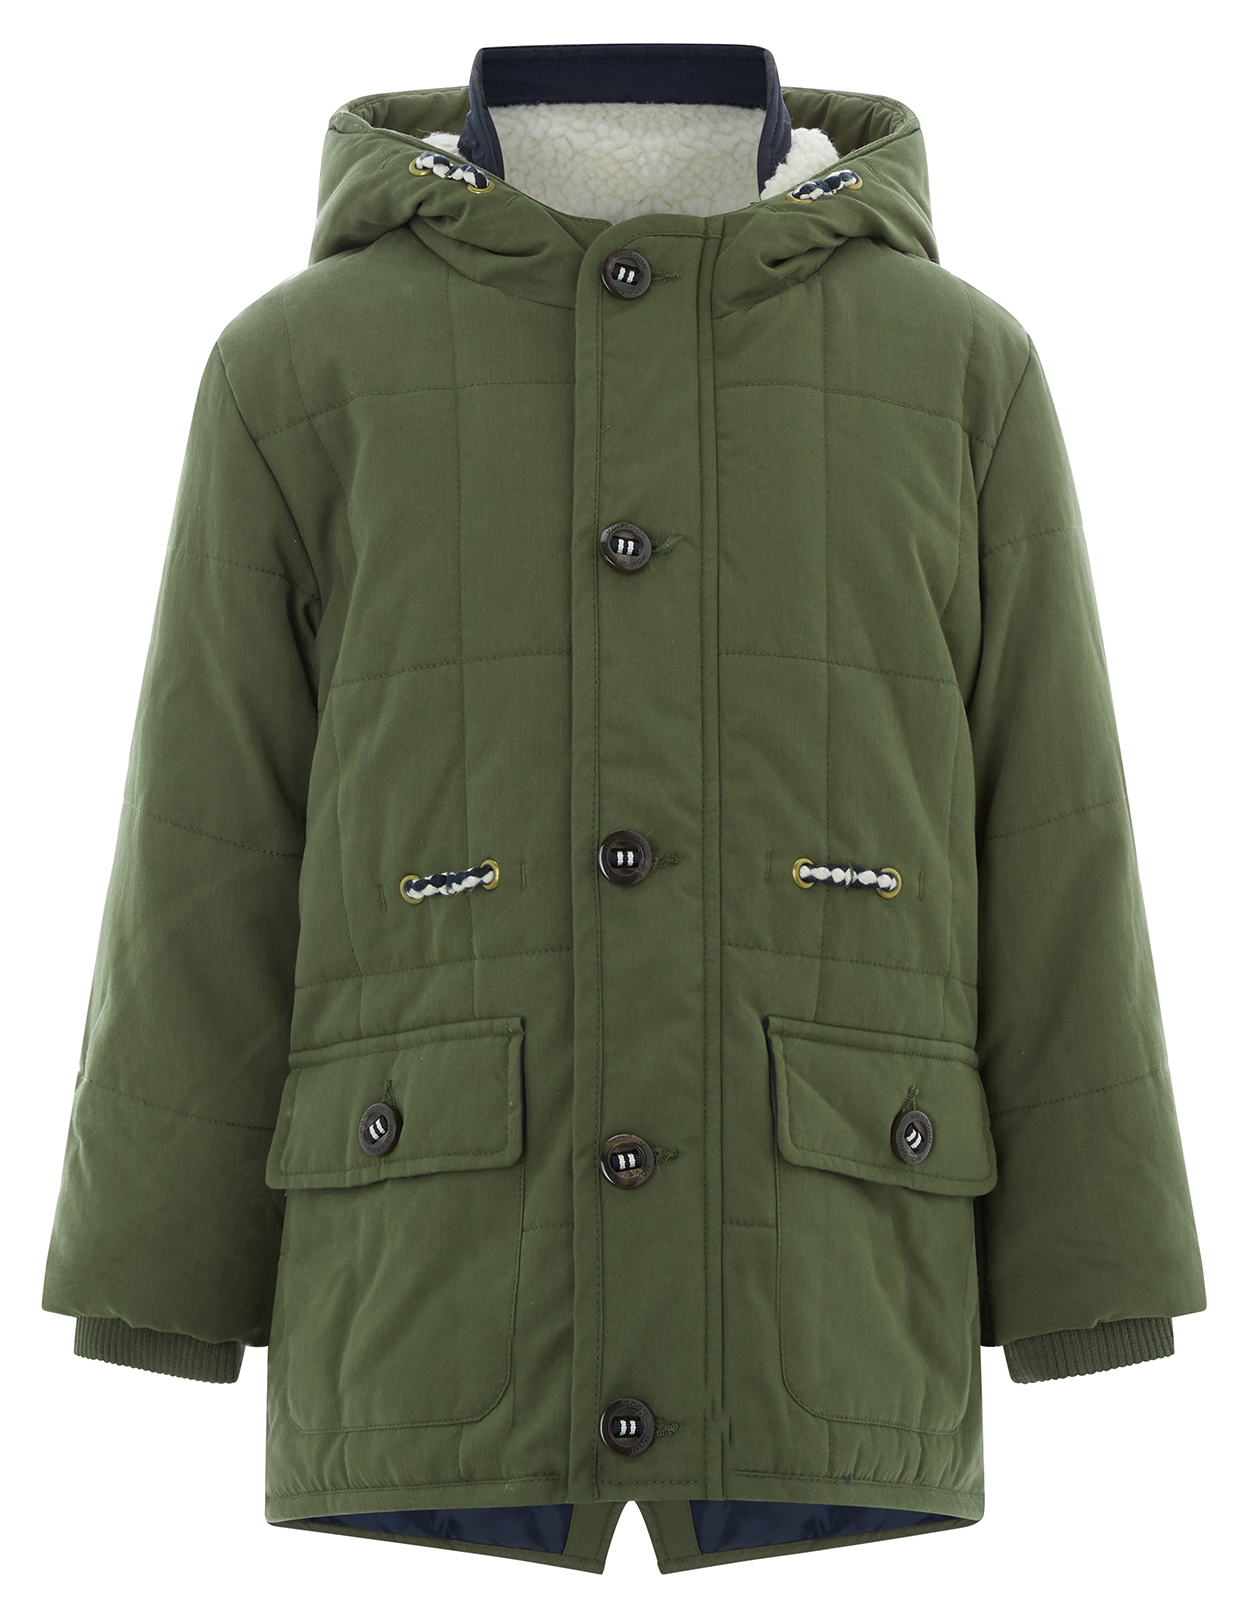 Monsoon Blake Borg Parka Coat